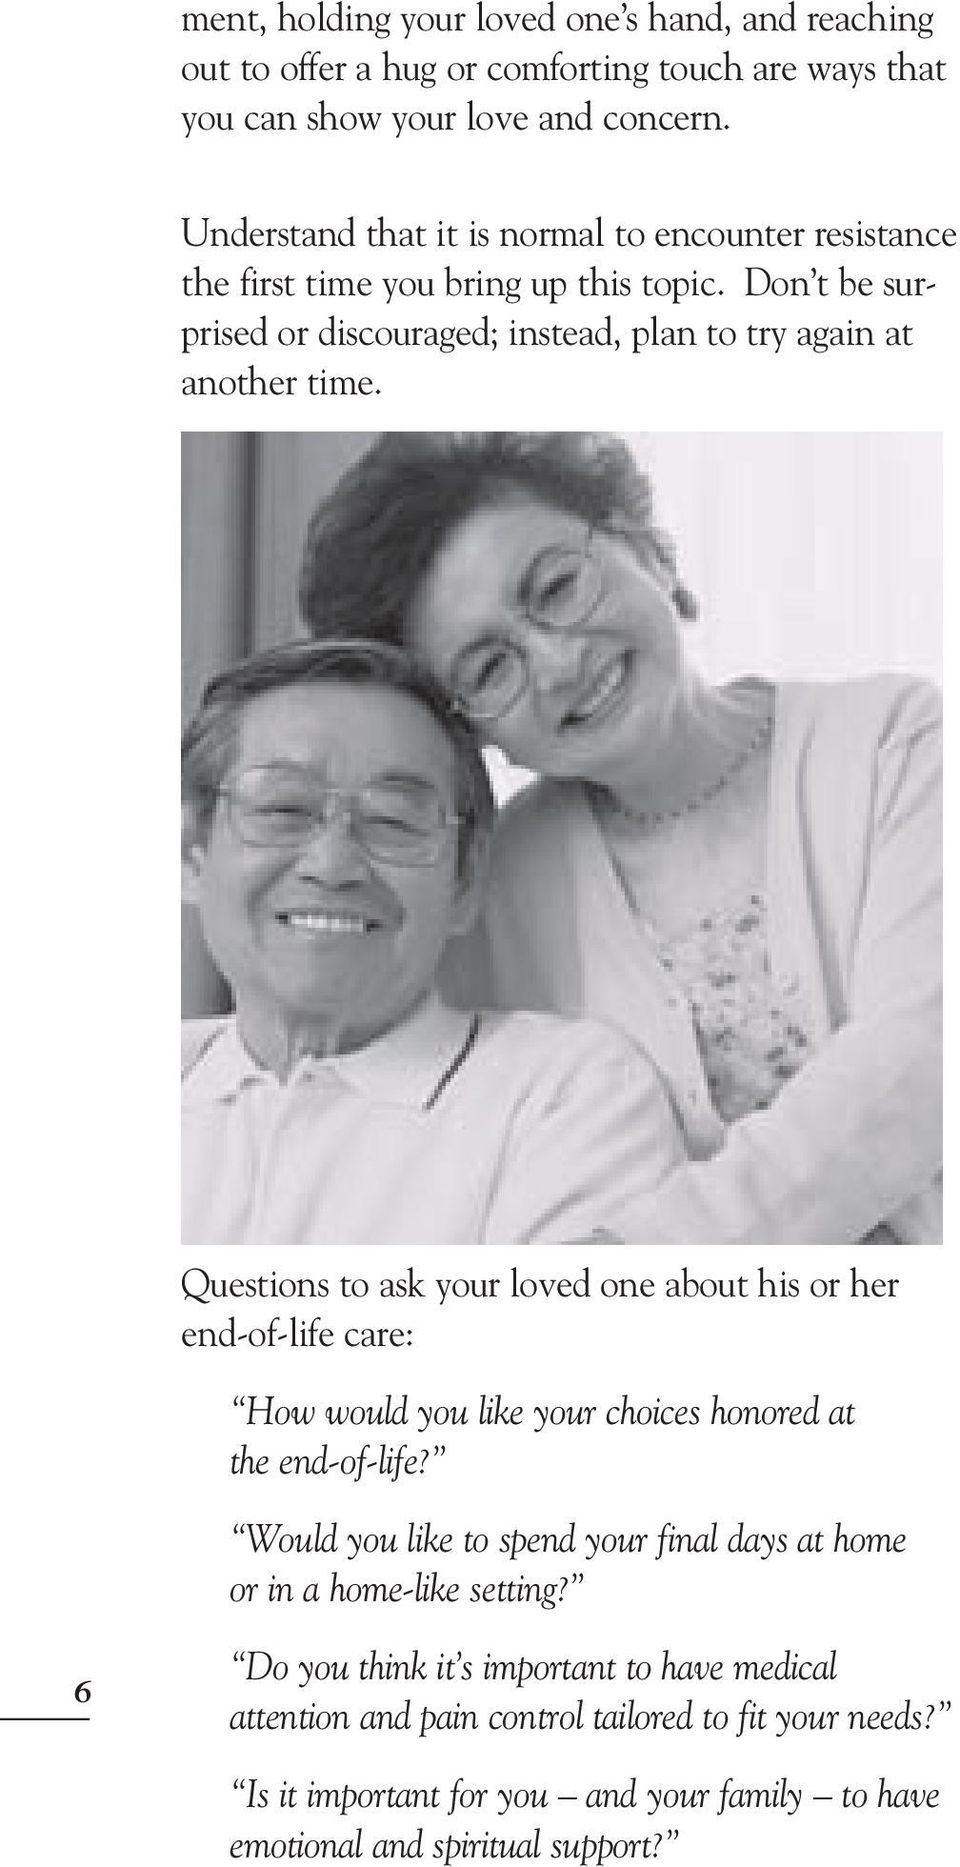 Questions to ask your loved one about his or her end-of-life care: How would you like your choices honored at the end-of-life?